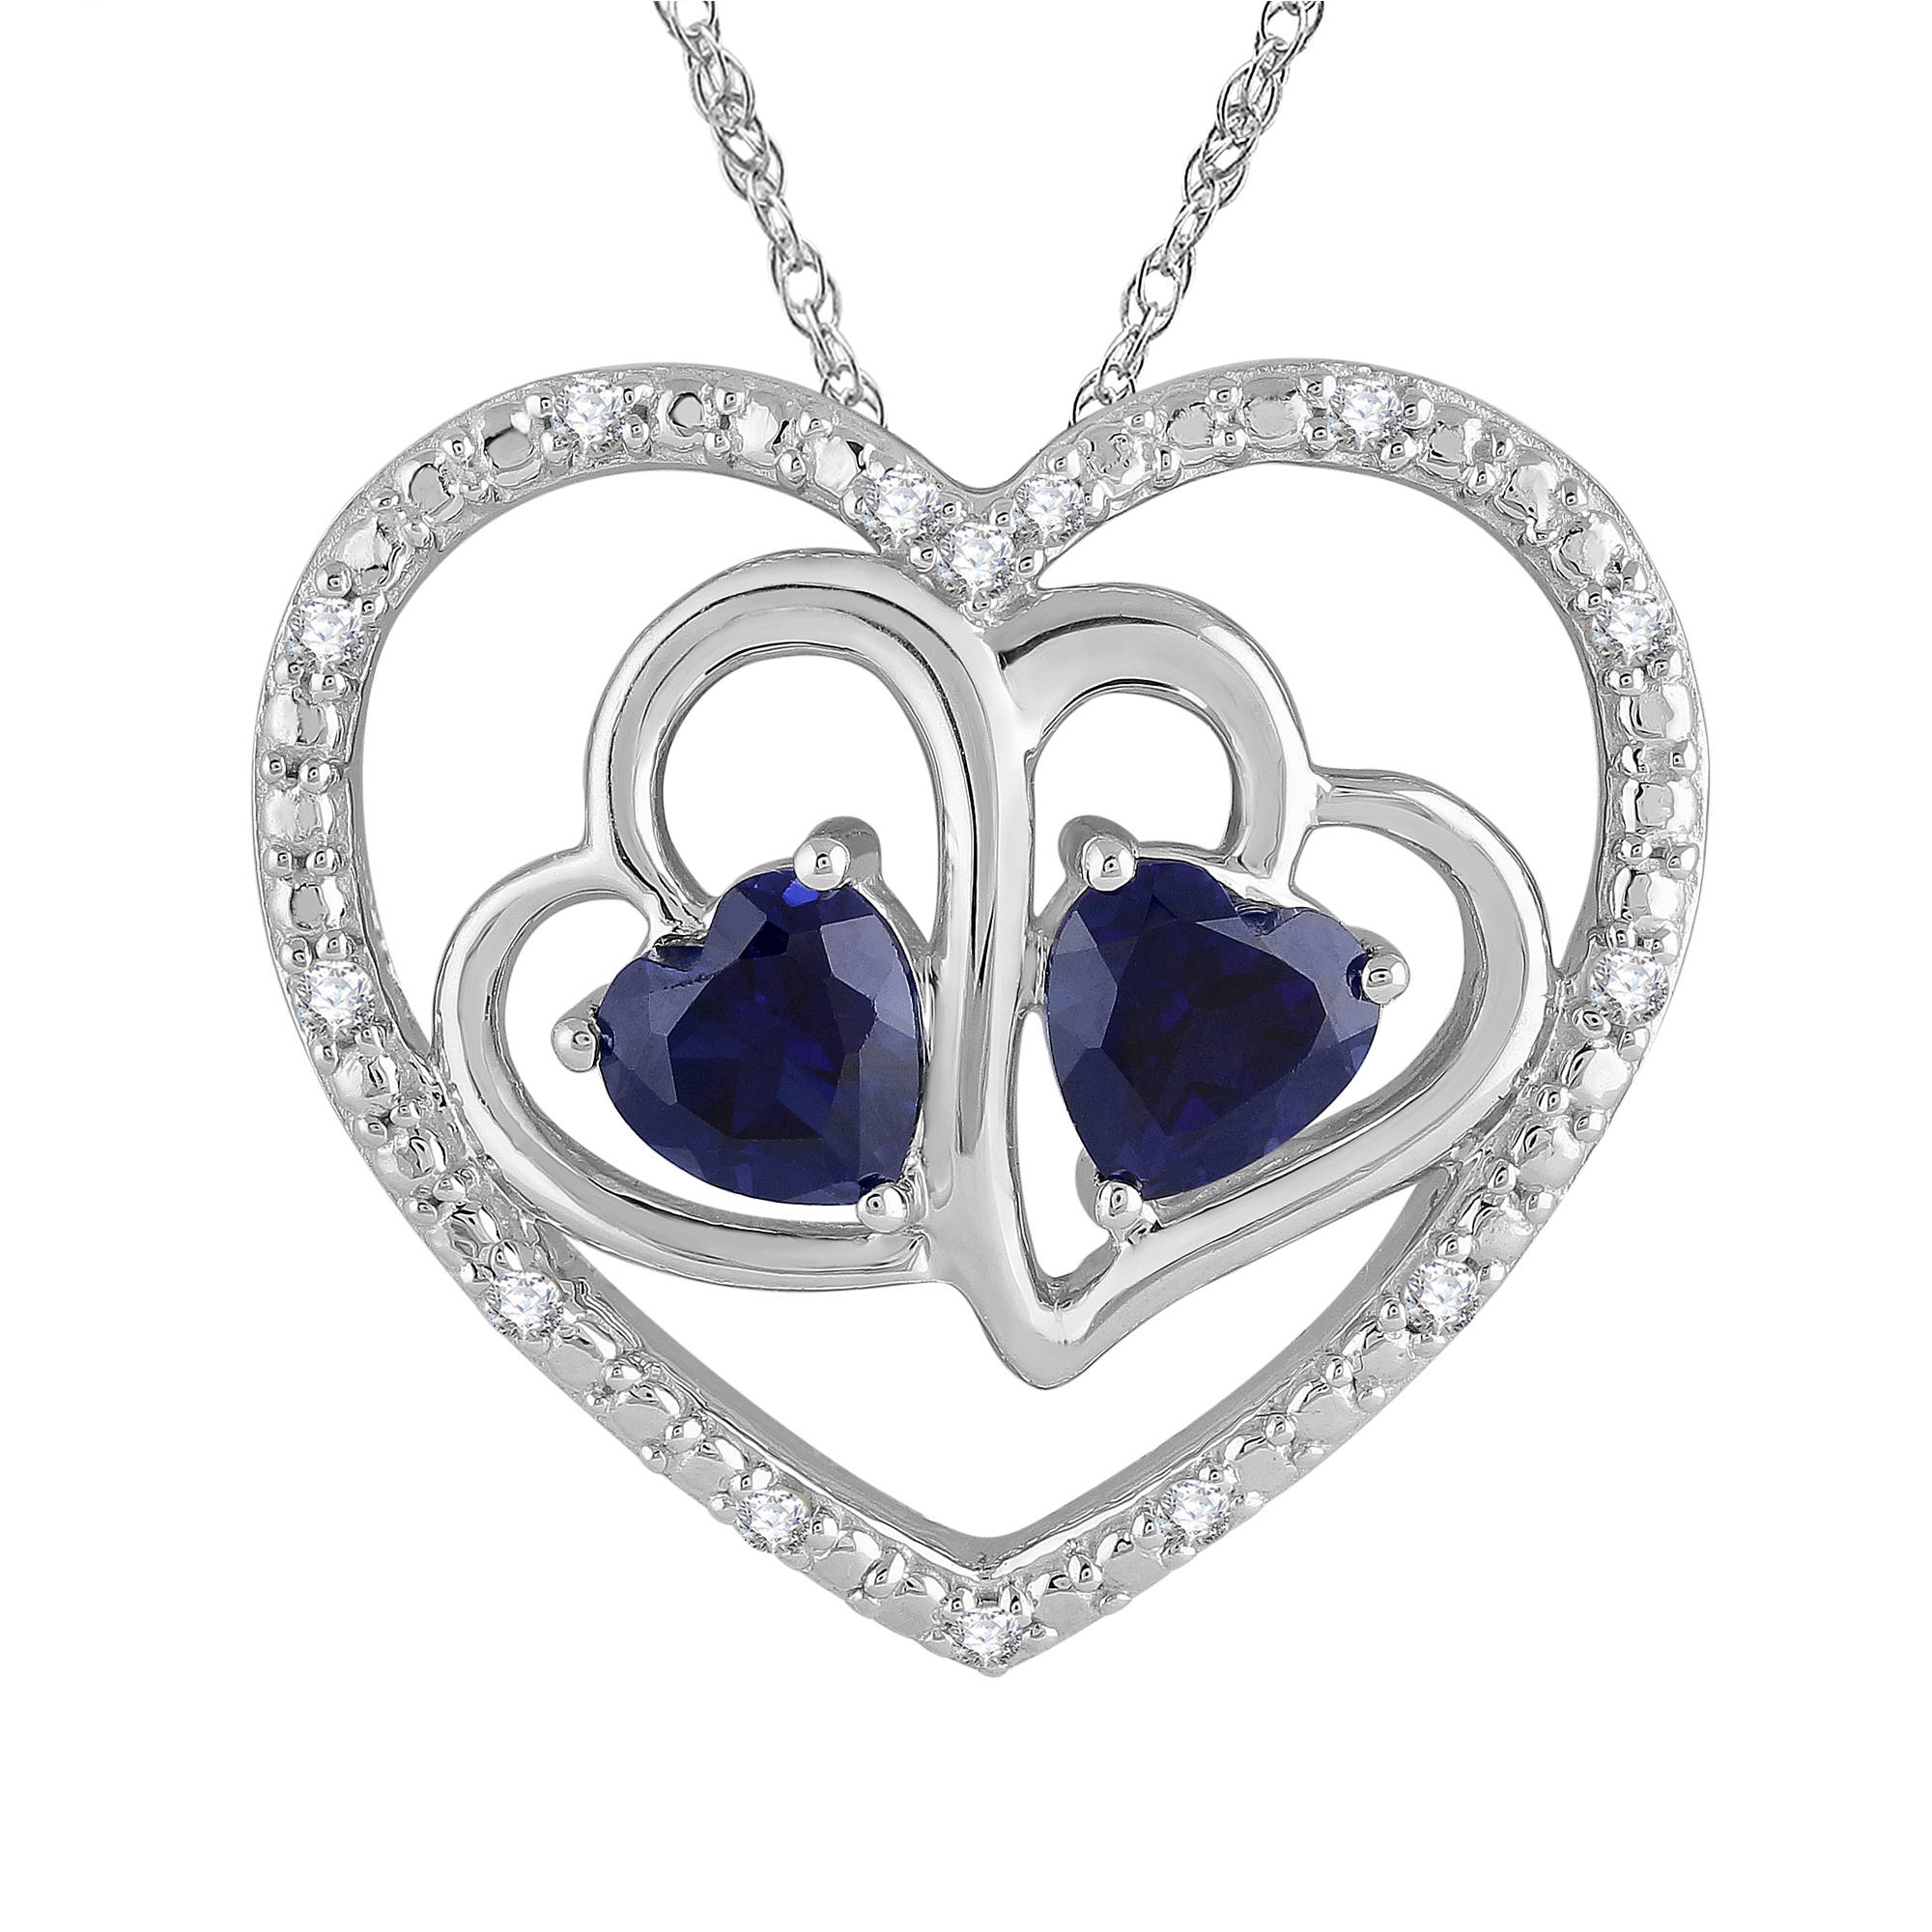 Heart 2 Heart Created Blue Sapphire and 1 10 Carat T.W. Diamond Sterling Silver Pendant with Chain by TARA JEWELS LTD